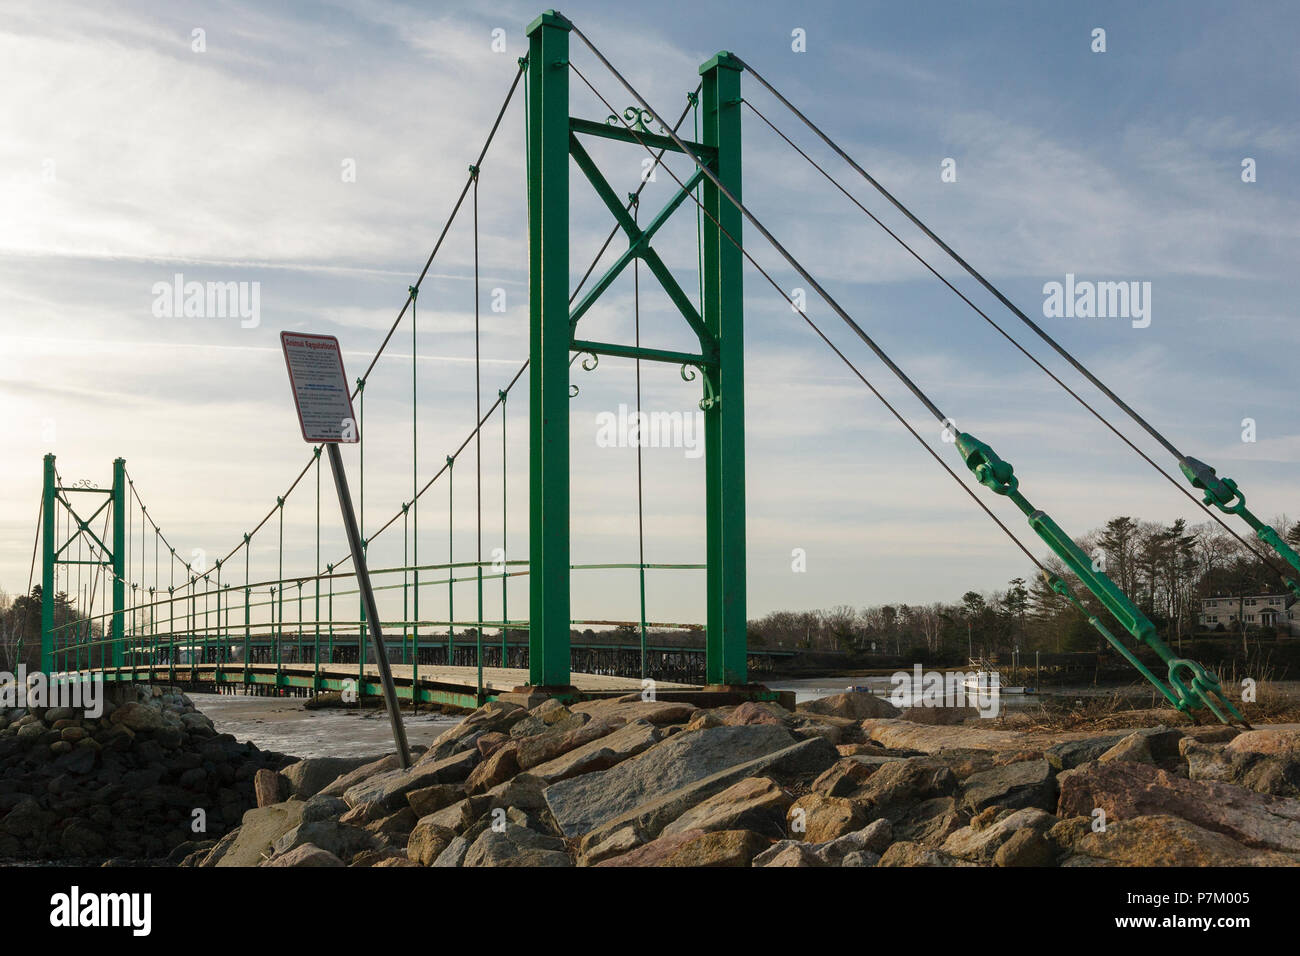 Wiggly Bridge in York, Maine USA during the spring months. This small foot bridge was built in the 1930s and wiggles while you walk across it. Stock Photo